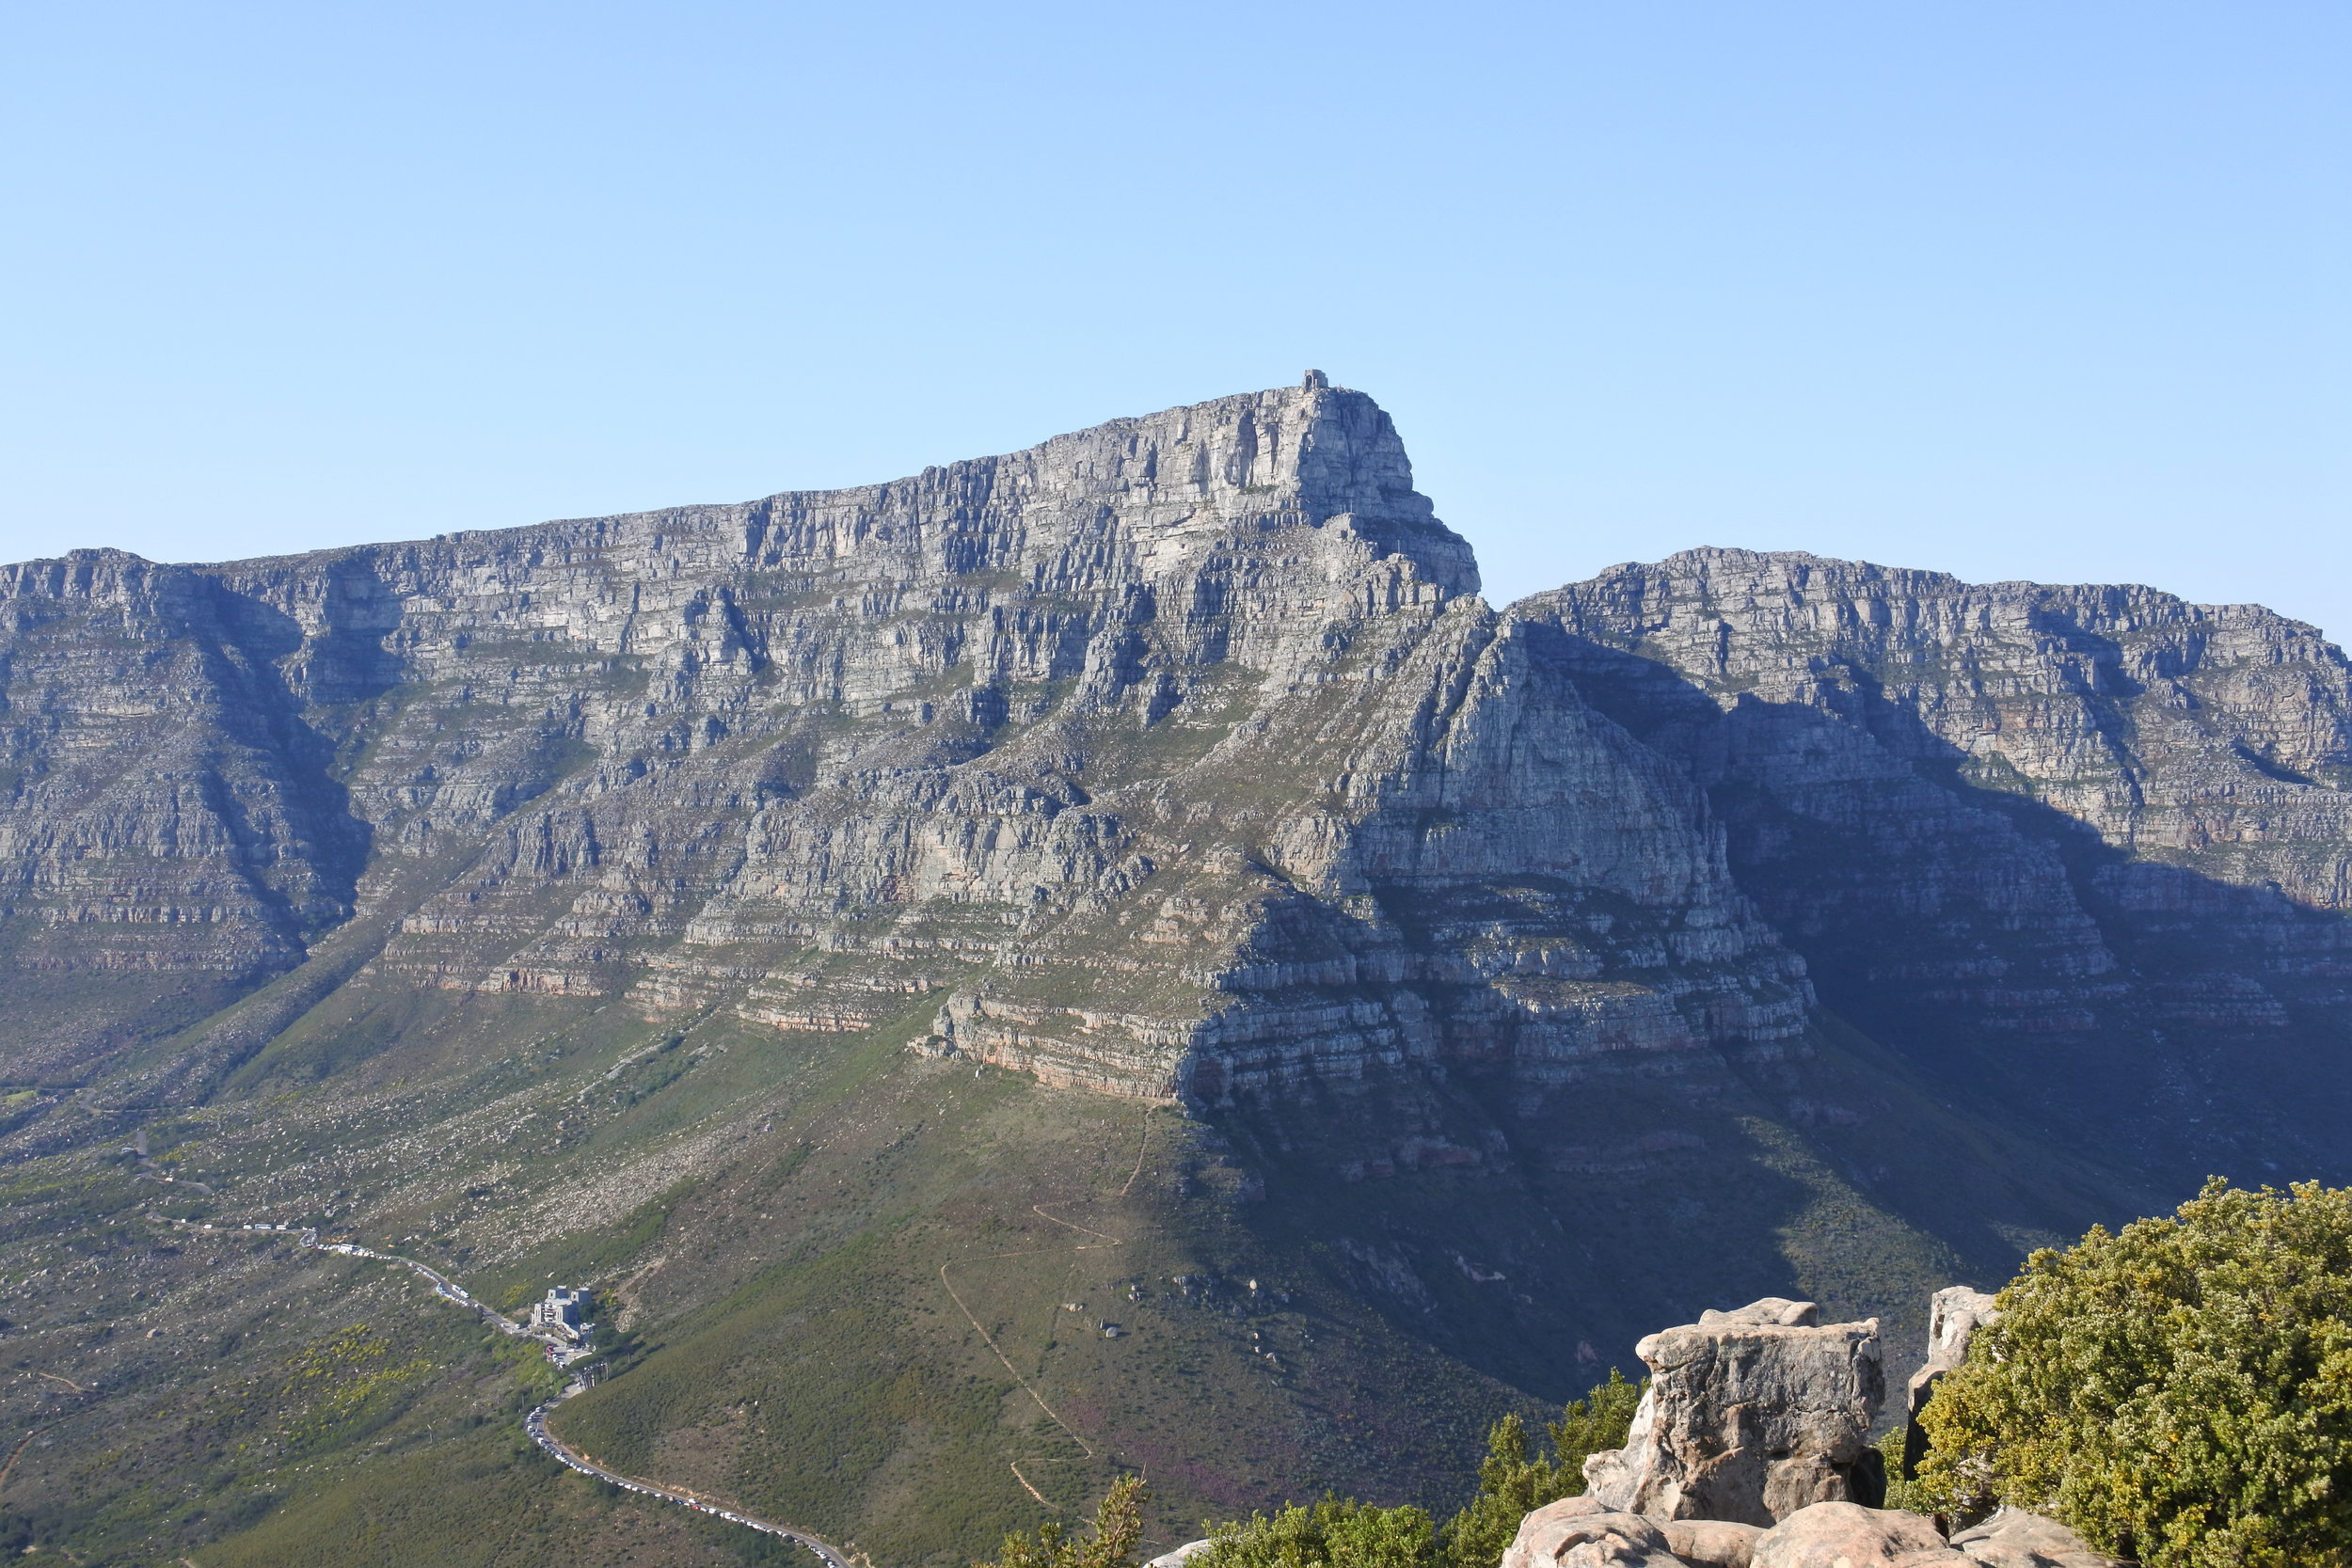 View of the Table Mountain Hiking Up Lion's Head